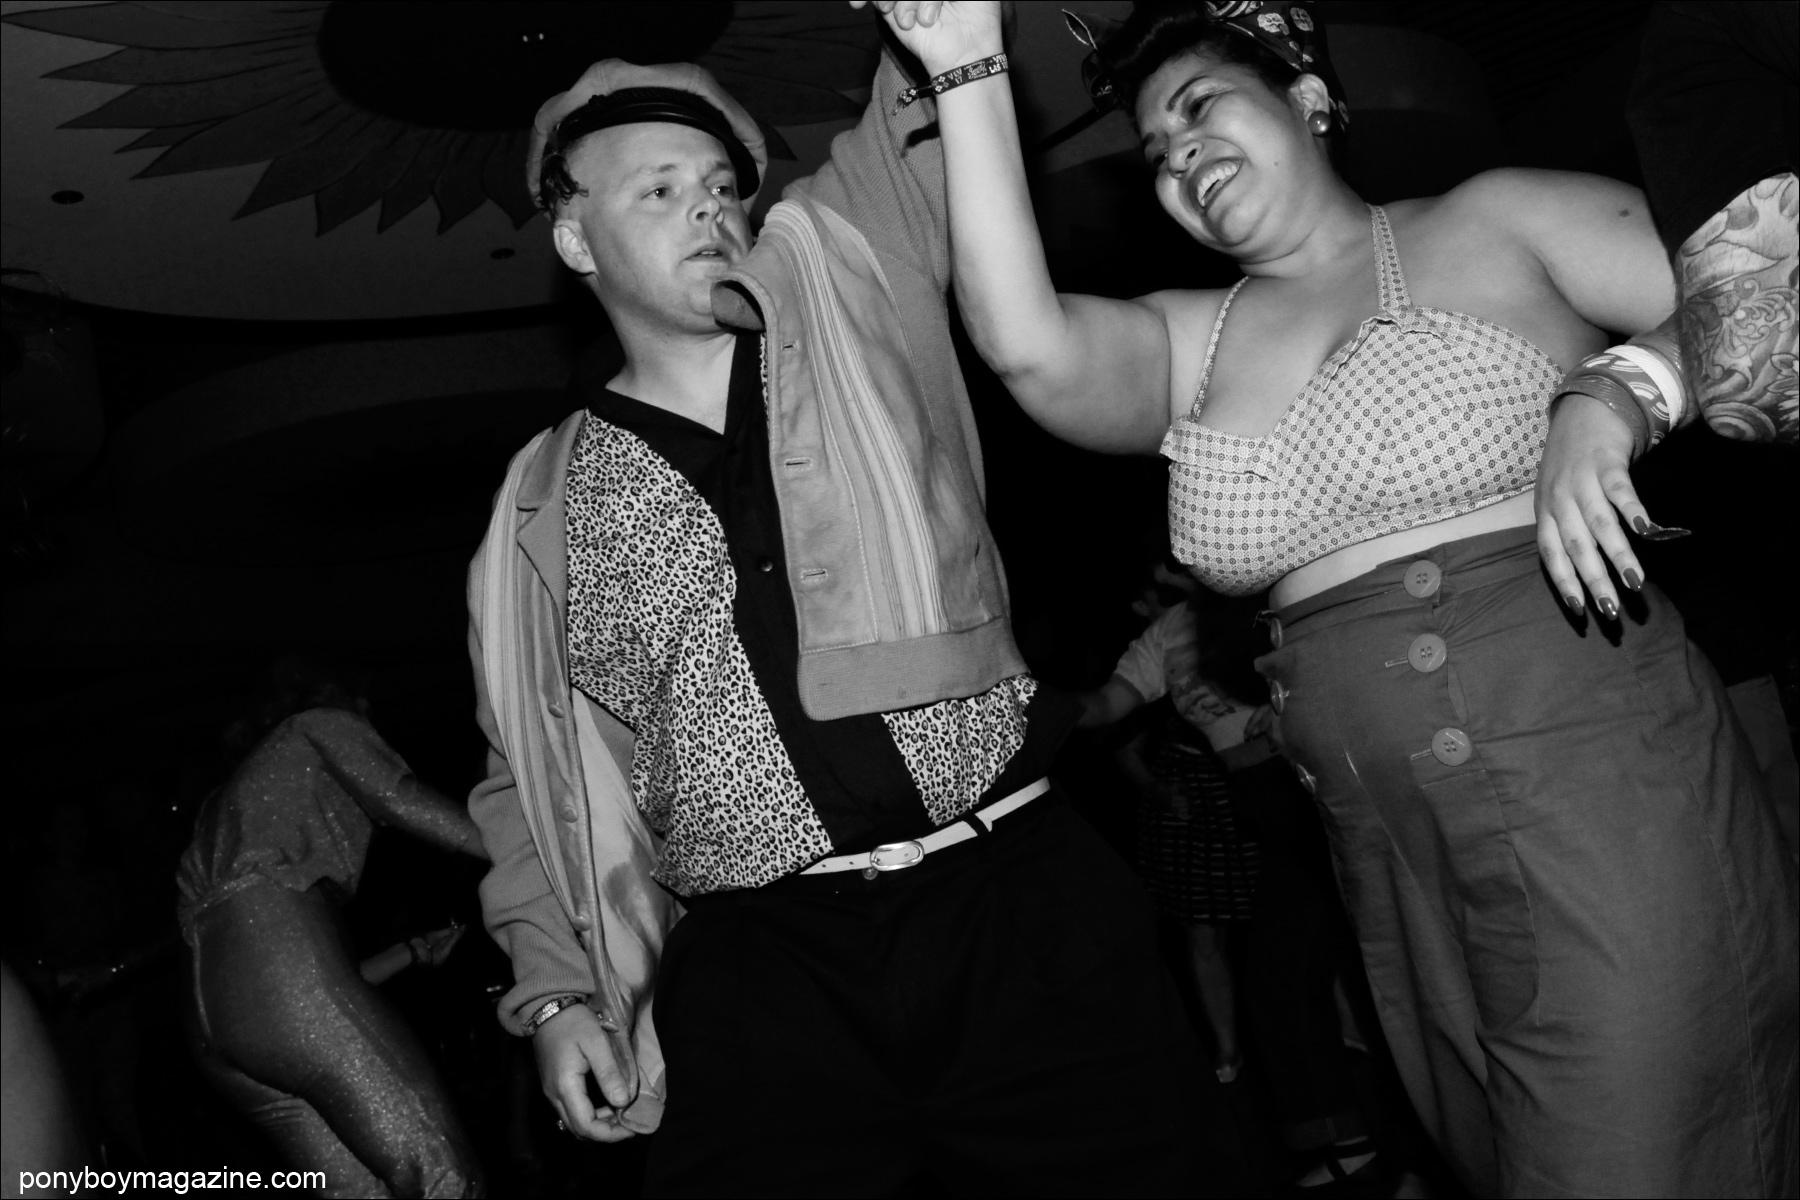 Rockabilly couple on the Viva Las Vegas dance floor, photographed by Alexander Thompson for Ponyboy Magazine.